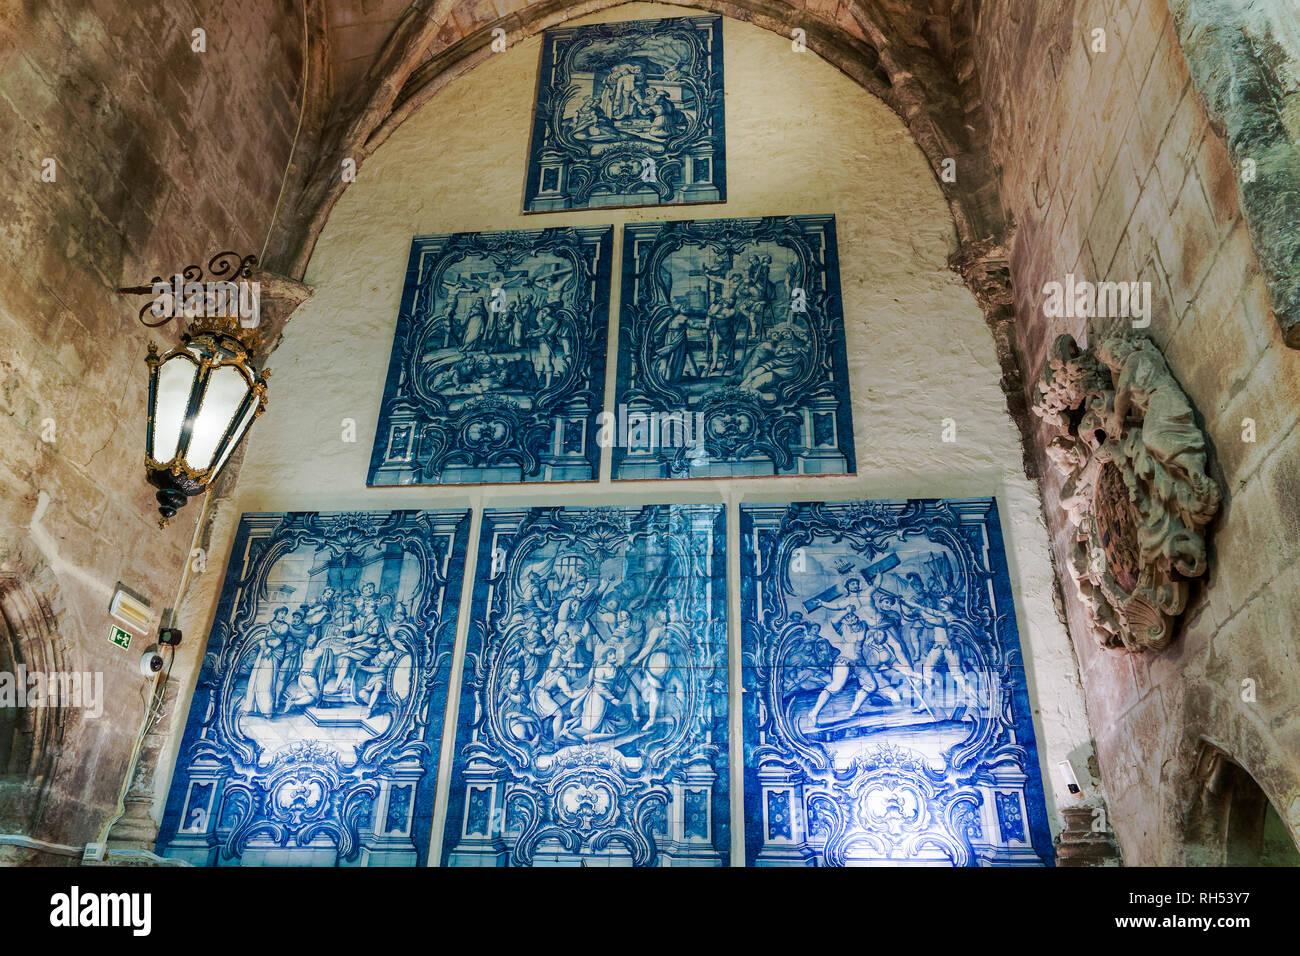 Lisbon, Portugal Carmo Convent Azulejos. Blue tiles decorations with historic figures in the Carmo Archeological museum. - Stock Image